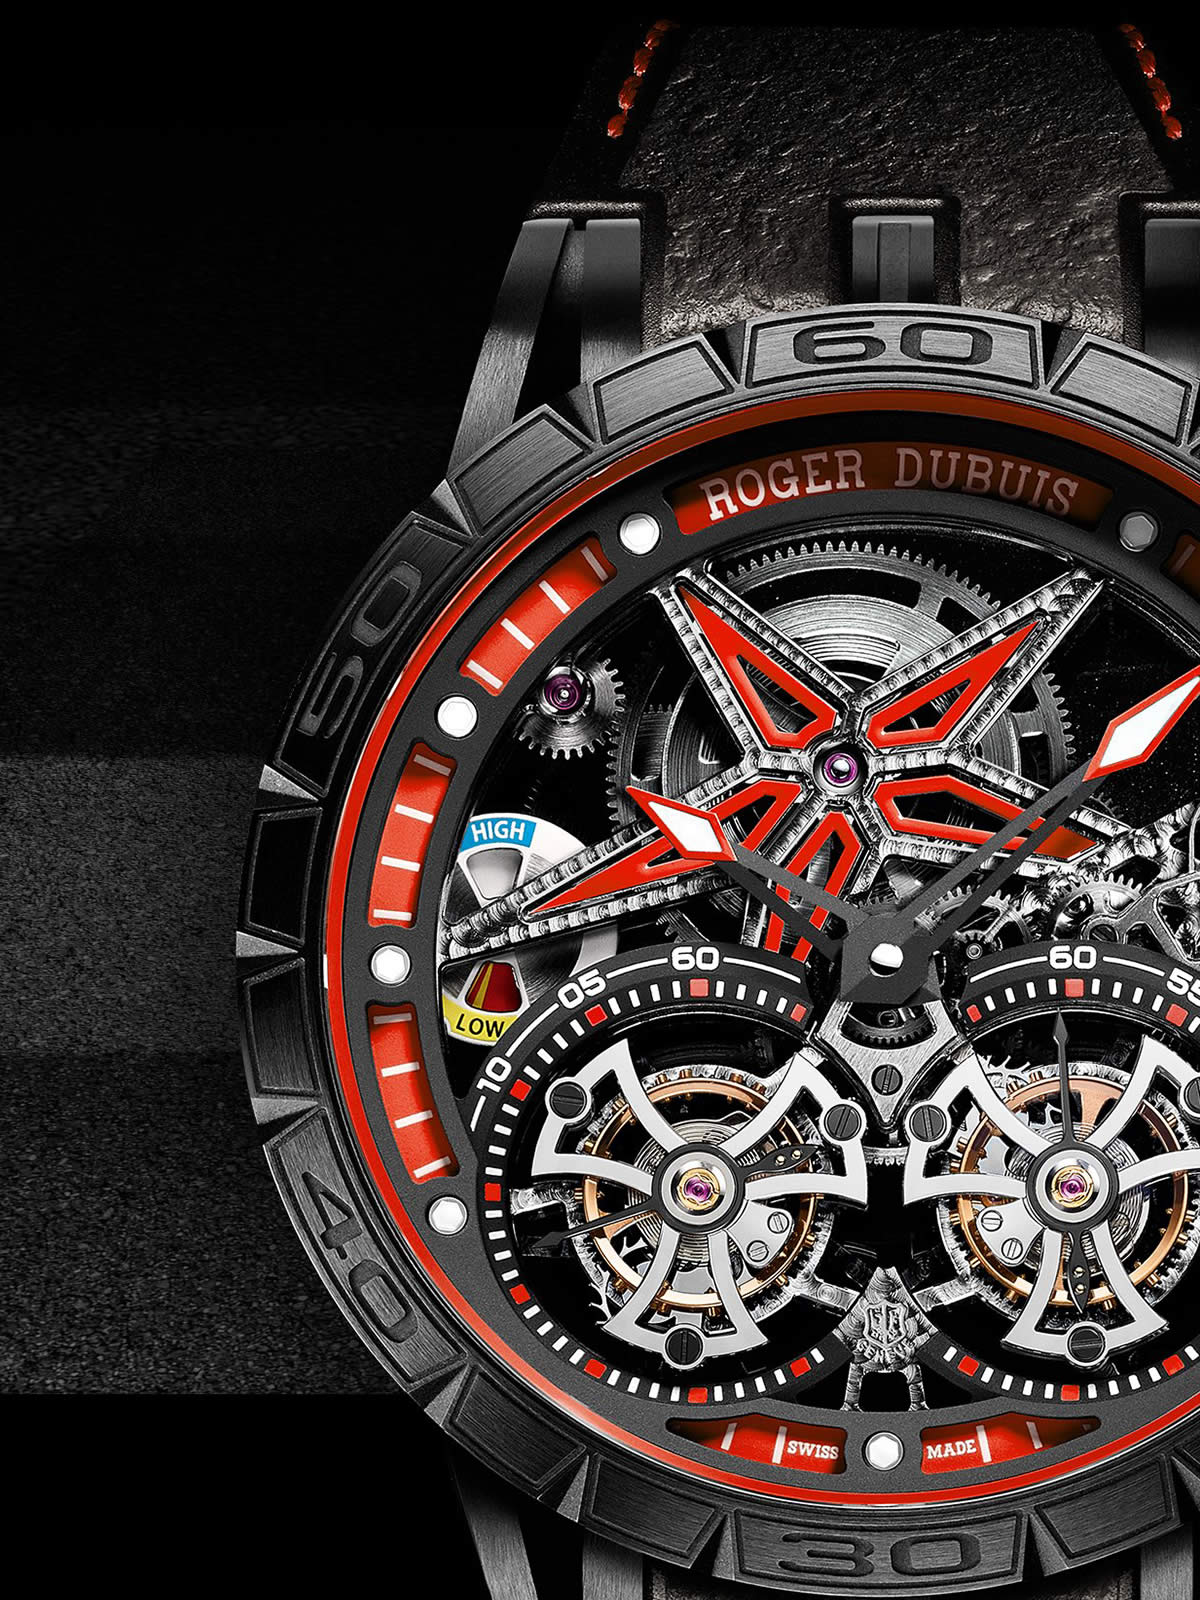 rddbex0657-roger-dubuis-excalibur-spider-pirelli-double-flying-tourbillon-3-.jpg